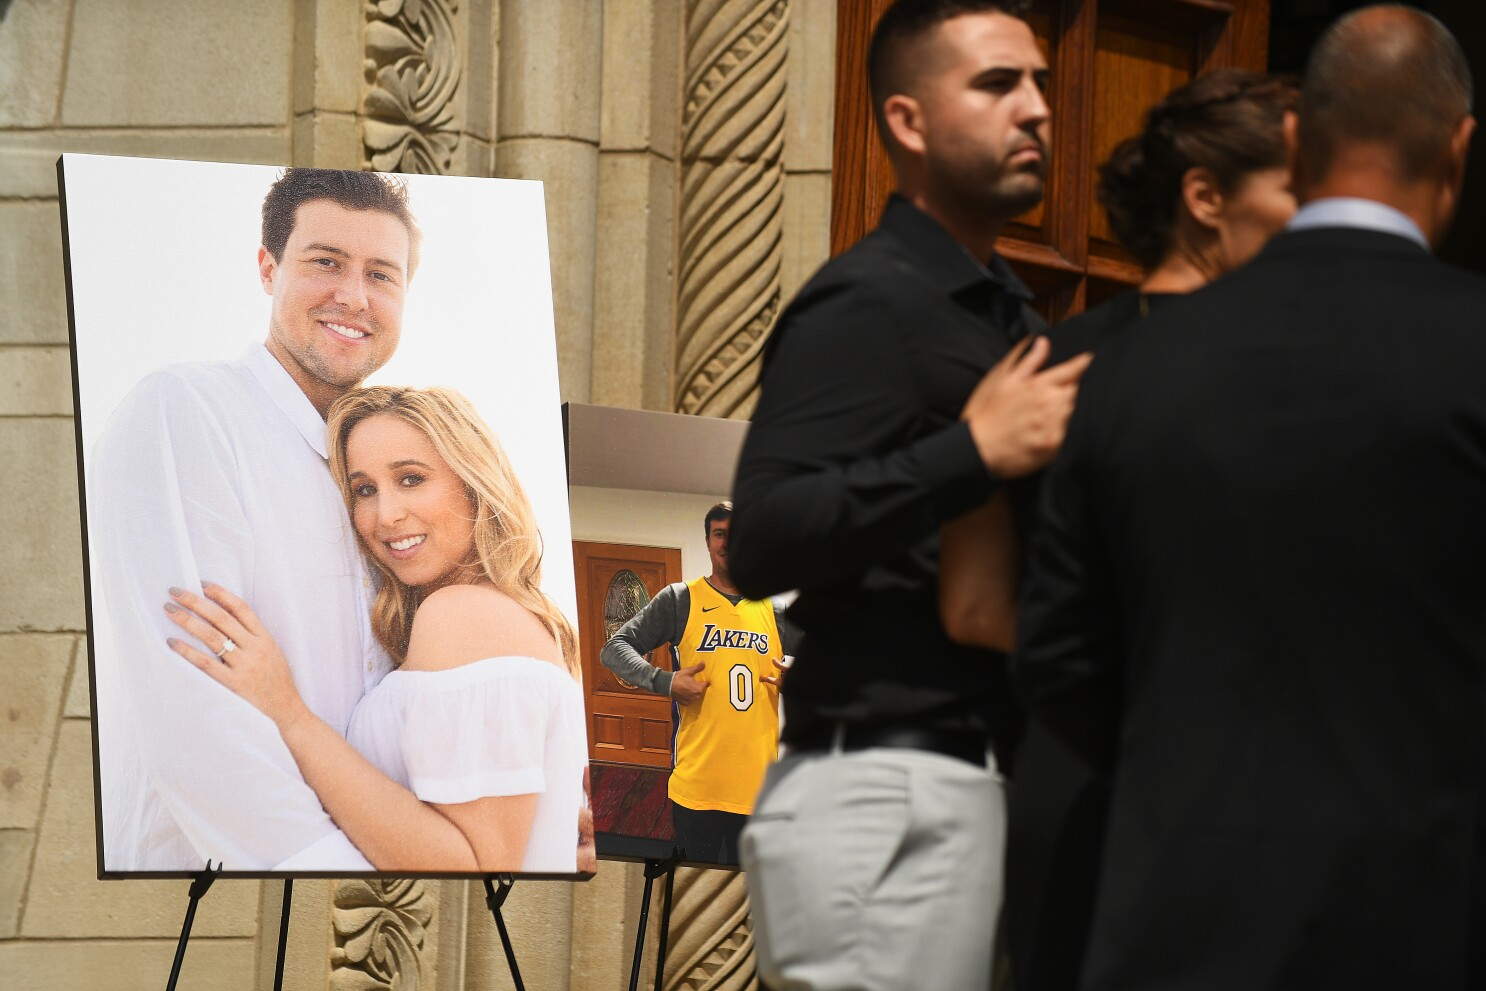 Angels mourn Tyler Skaggs' death, celebrate his life at memorial service